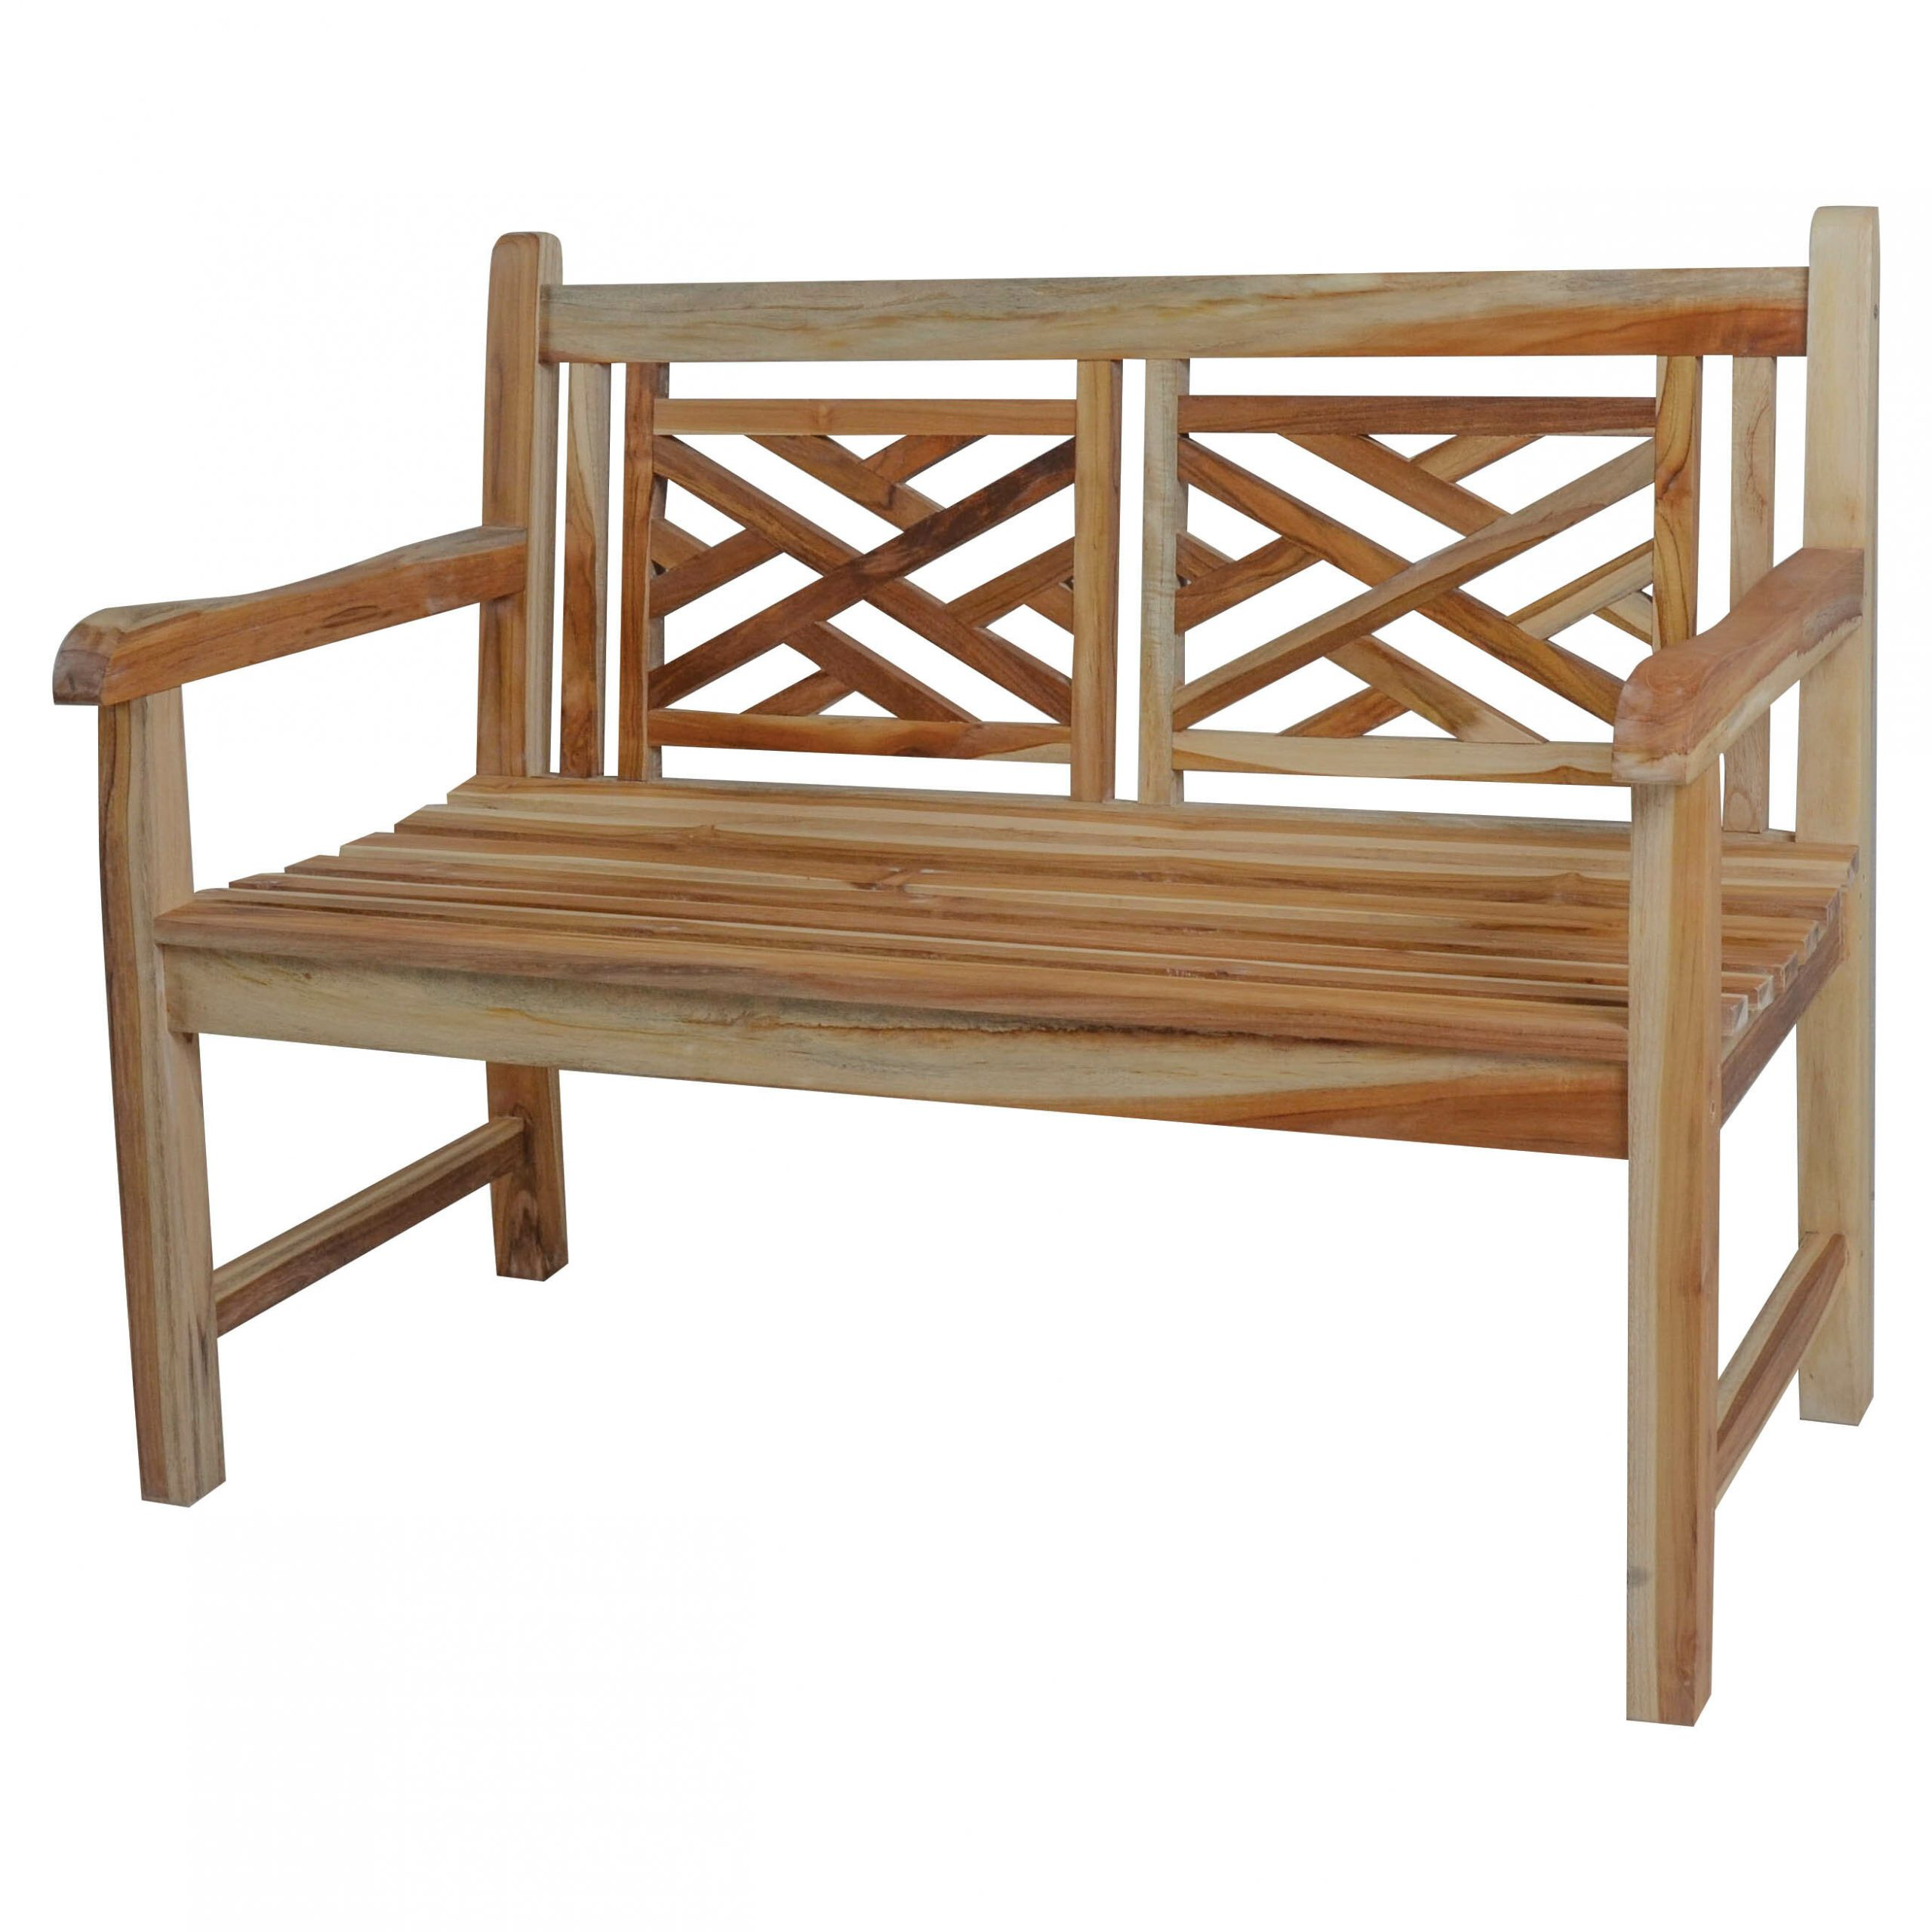 Kings Cross Teak Garden Bench Throughout Hampstead Teak Garden Benches (View 19 of 25)